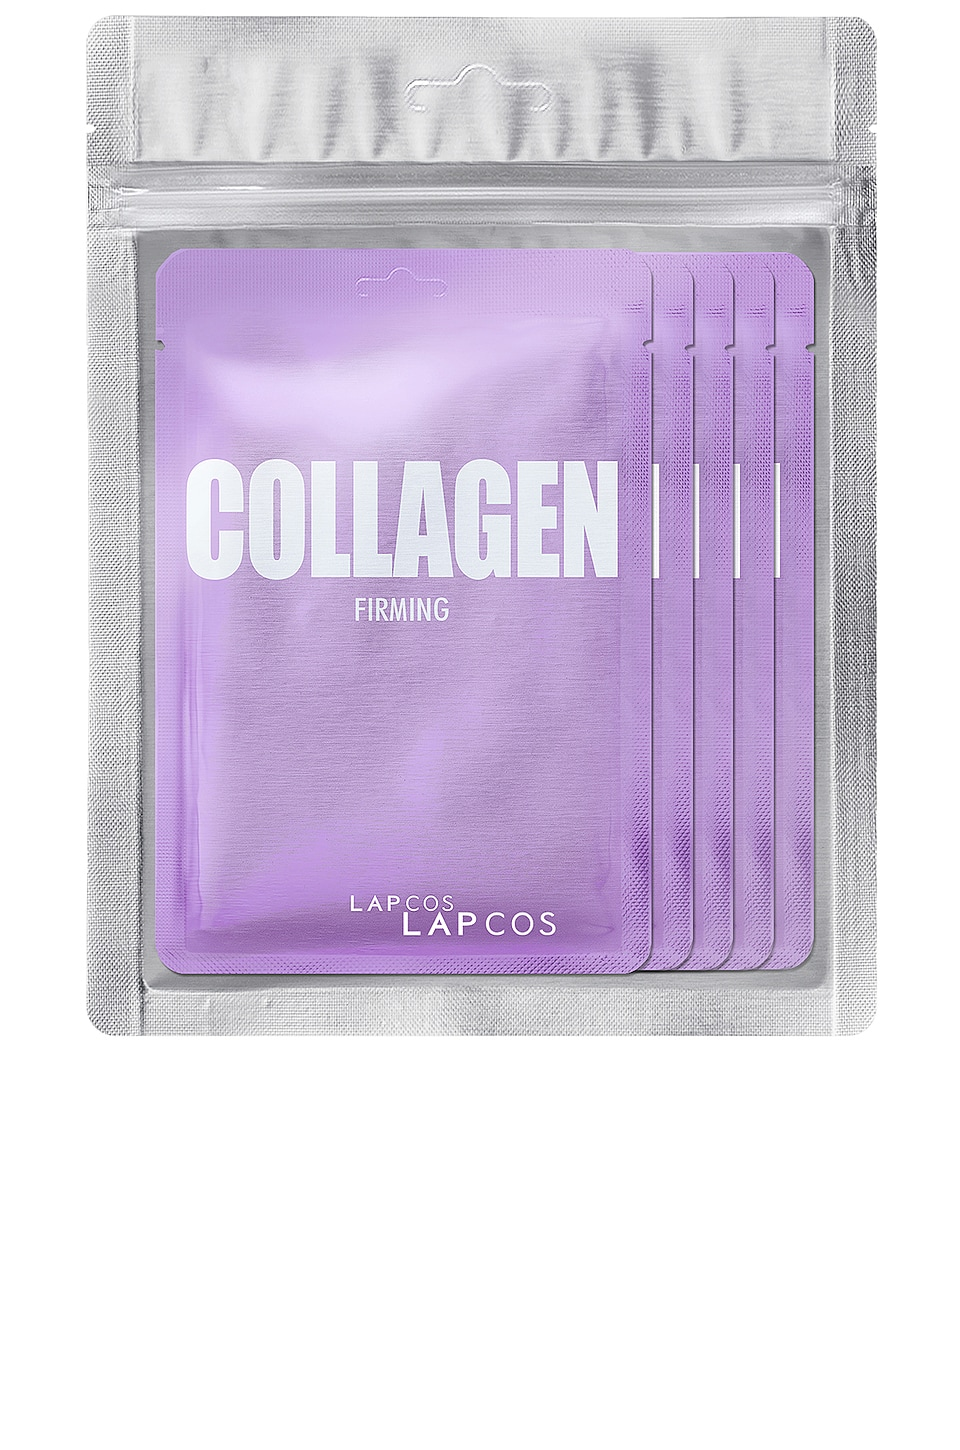 LAPCOS Collagen Daily Skin Mask 5 Pack